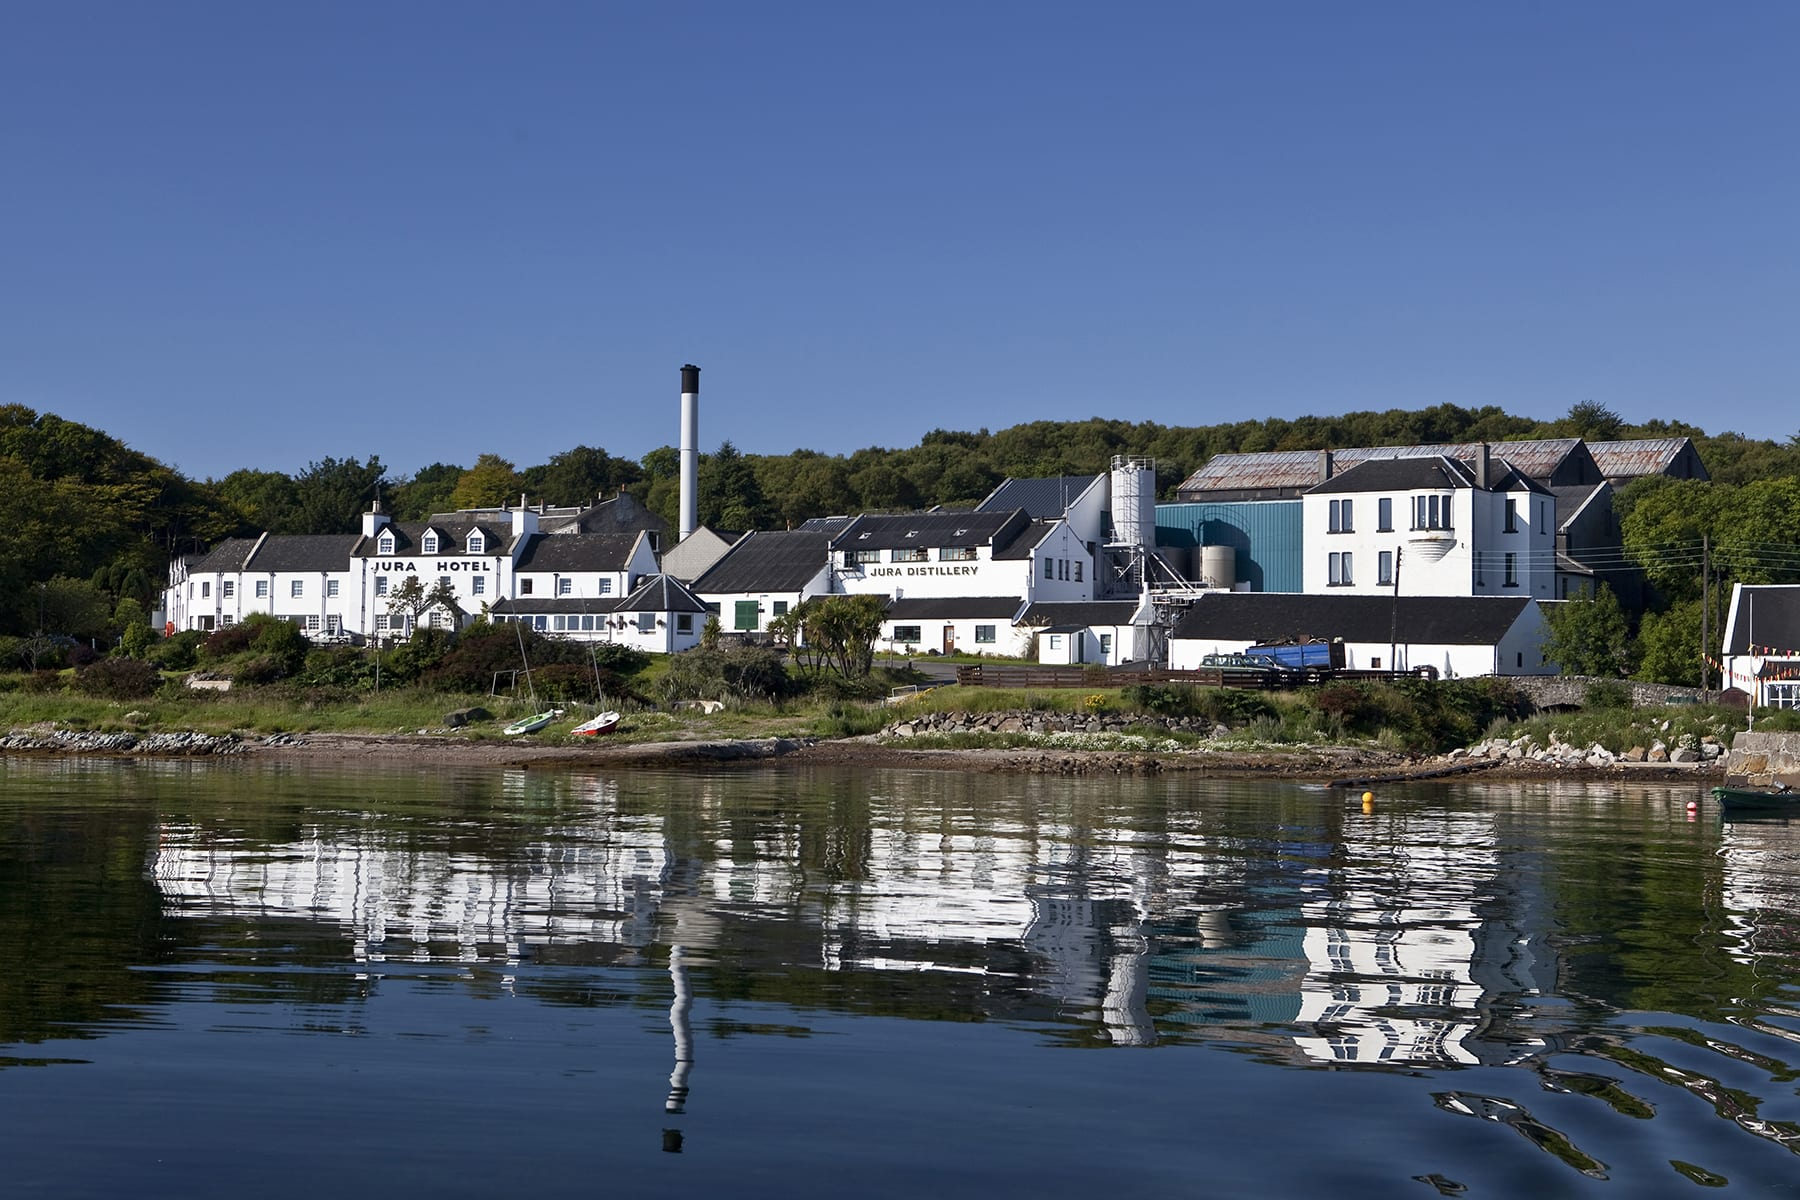 The Isle of Jura Distillery